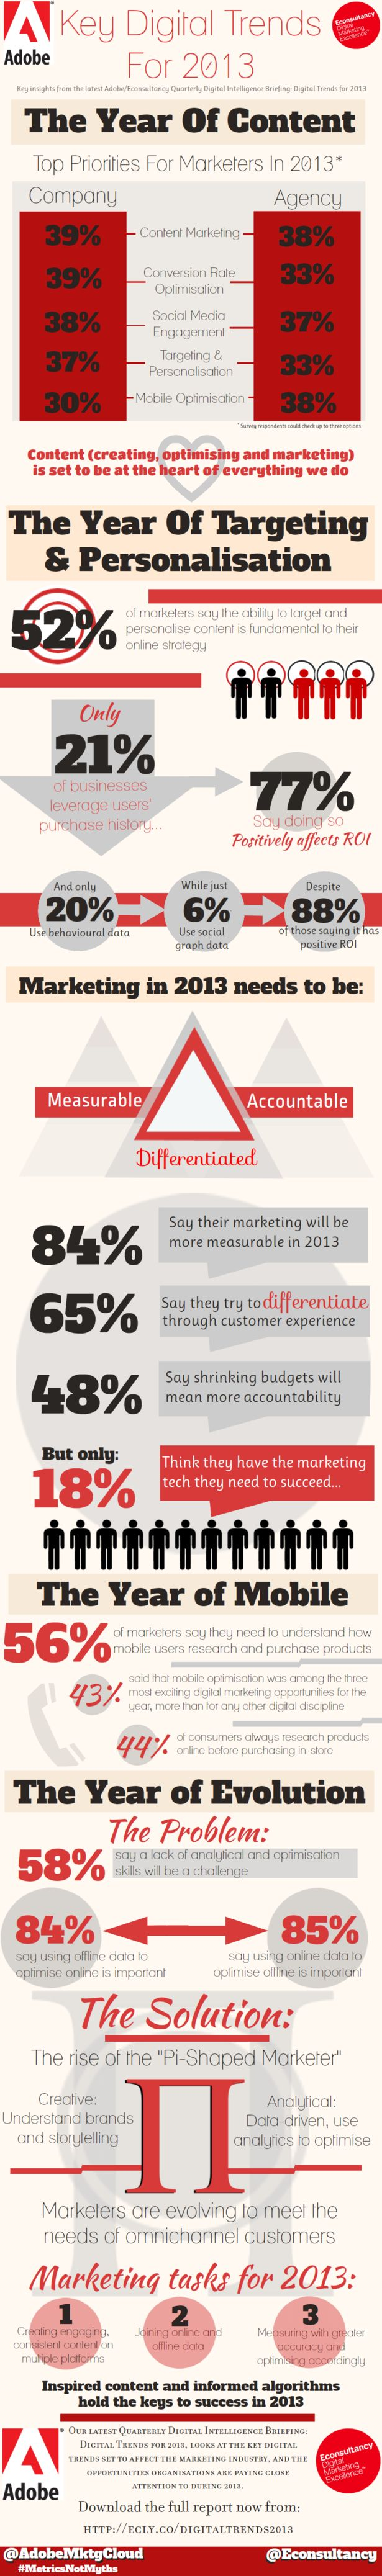 Key digital trends for 2013 [infographic].   This infographic sums up some of the key findings from the survey of around 700 business respondents...